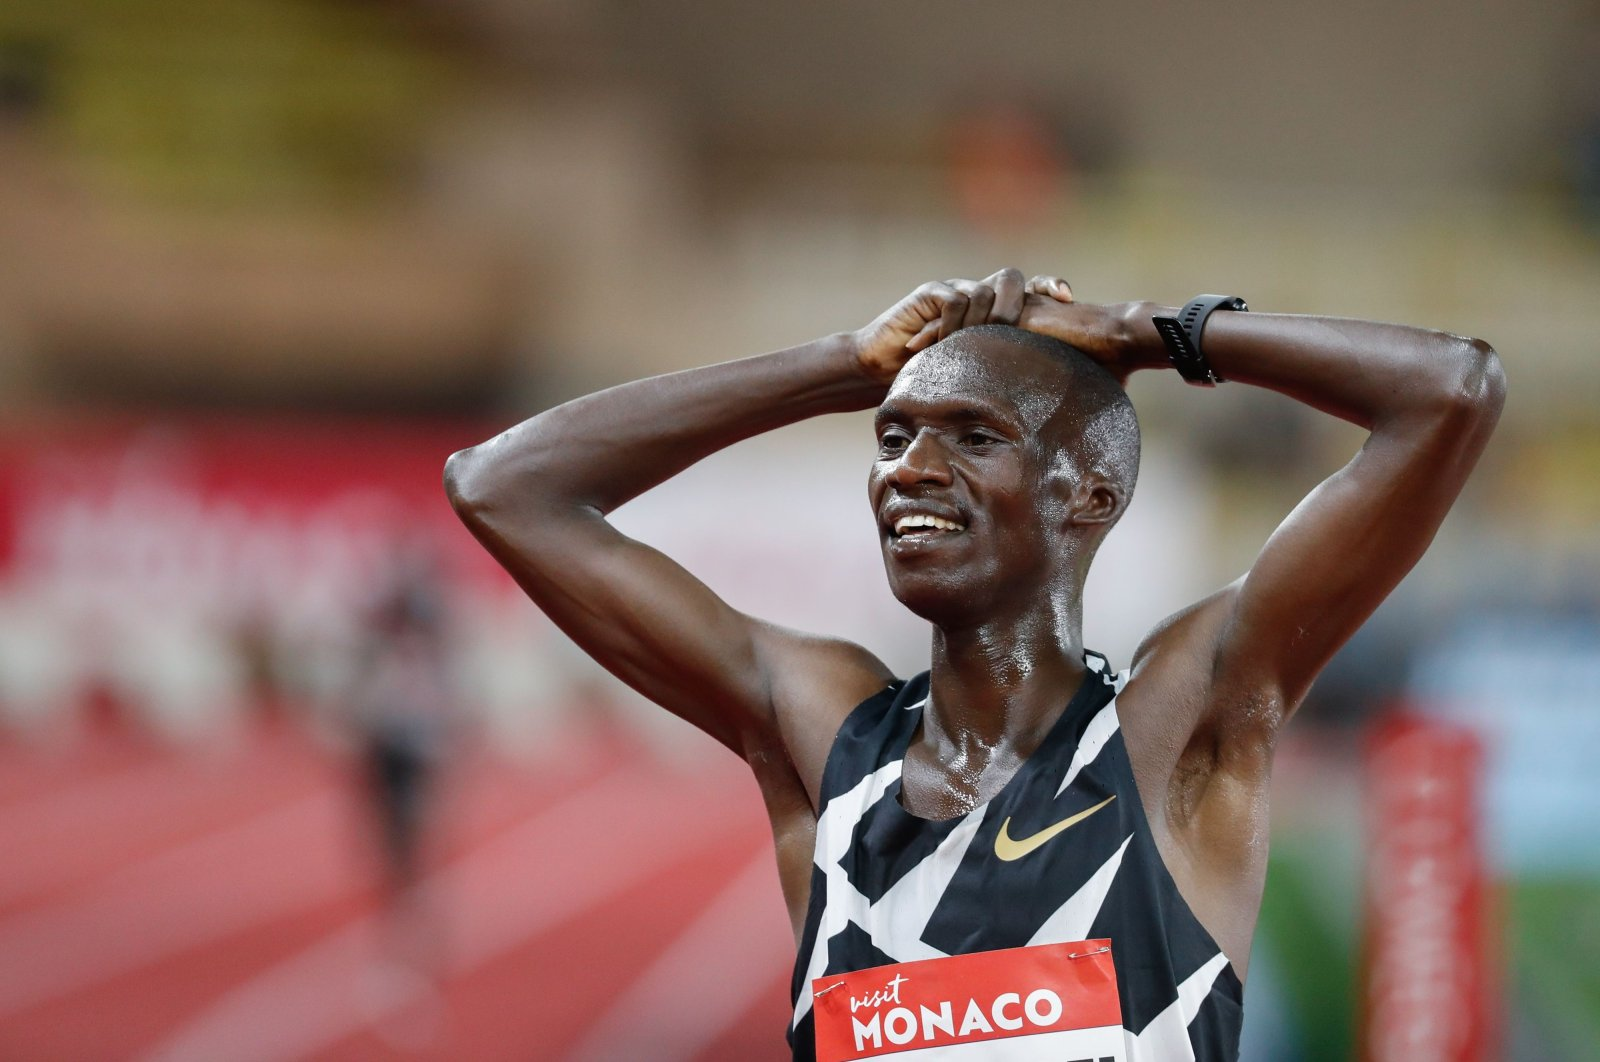 Uganda's Joshua Cheptegei celebrates after winning and breaking the world record in the men's 5000metre event during the Diamond League Athletics Meeting at The Louis II Stadium in Monaco on August 14, 2020. (AFP Photo)